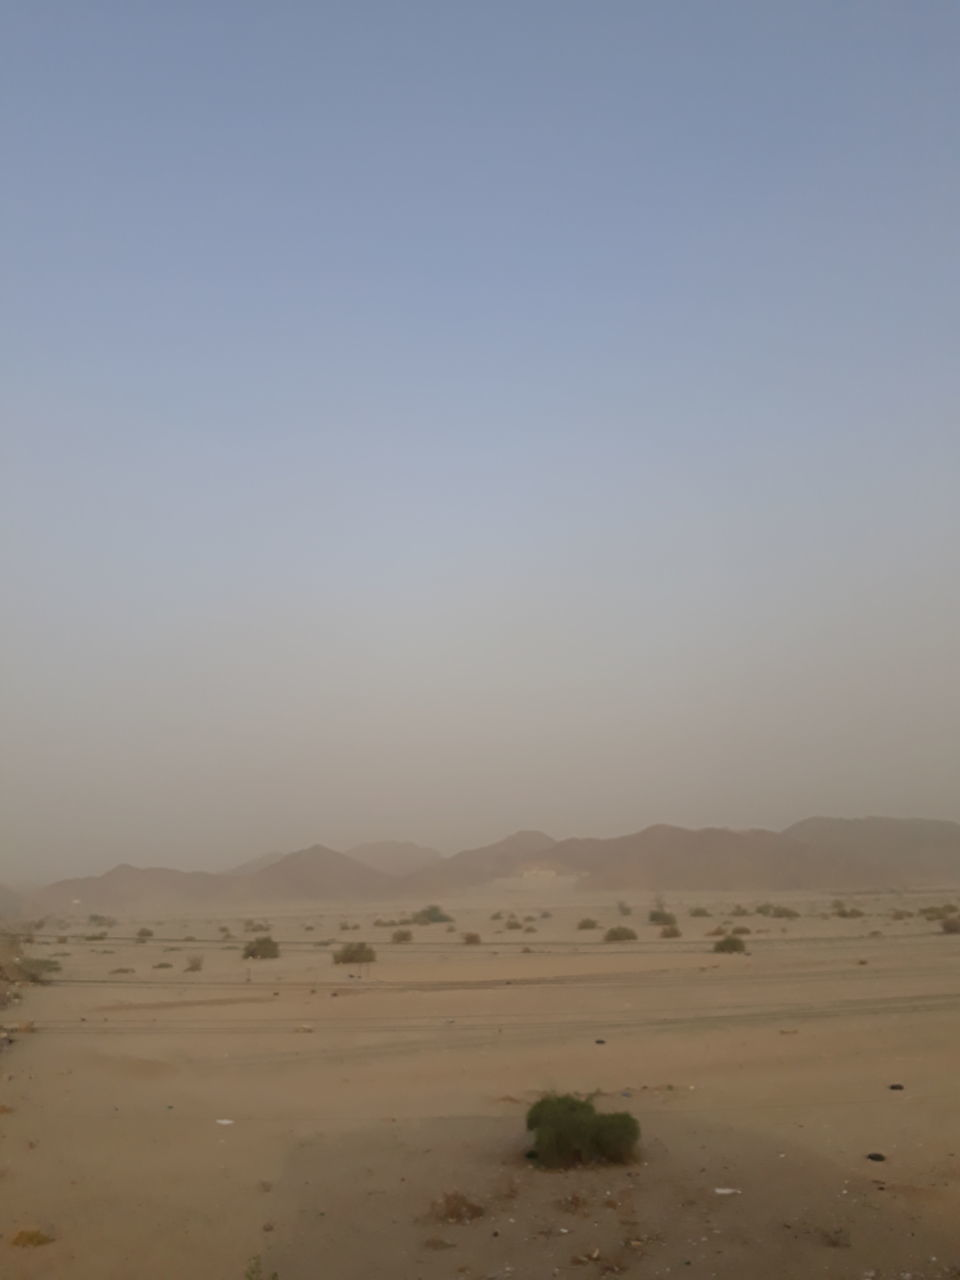 nature, tranquility, tranquil scene, landscape, scenics, beauty in nature, arid climate, desert, no people, outdoors, clear sky, sky, day, sand dune